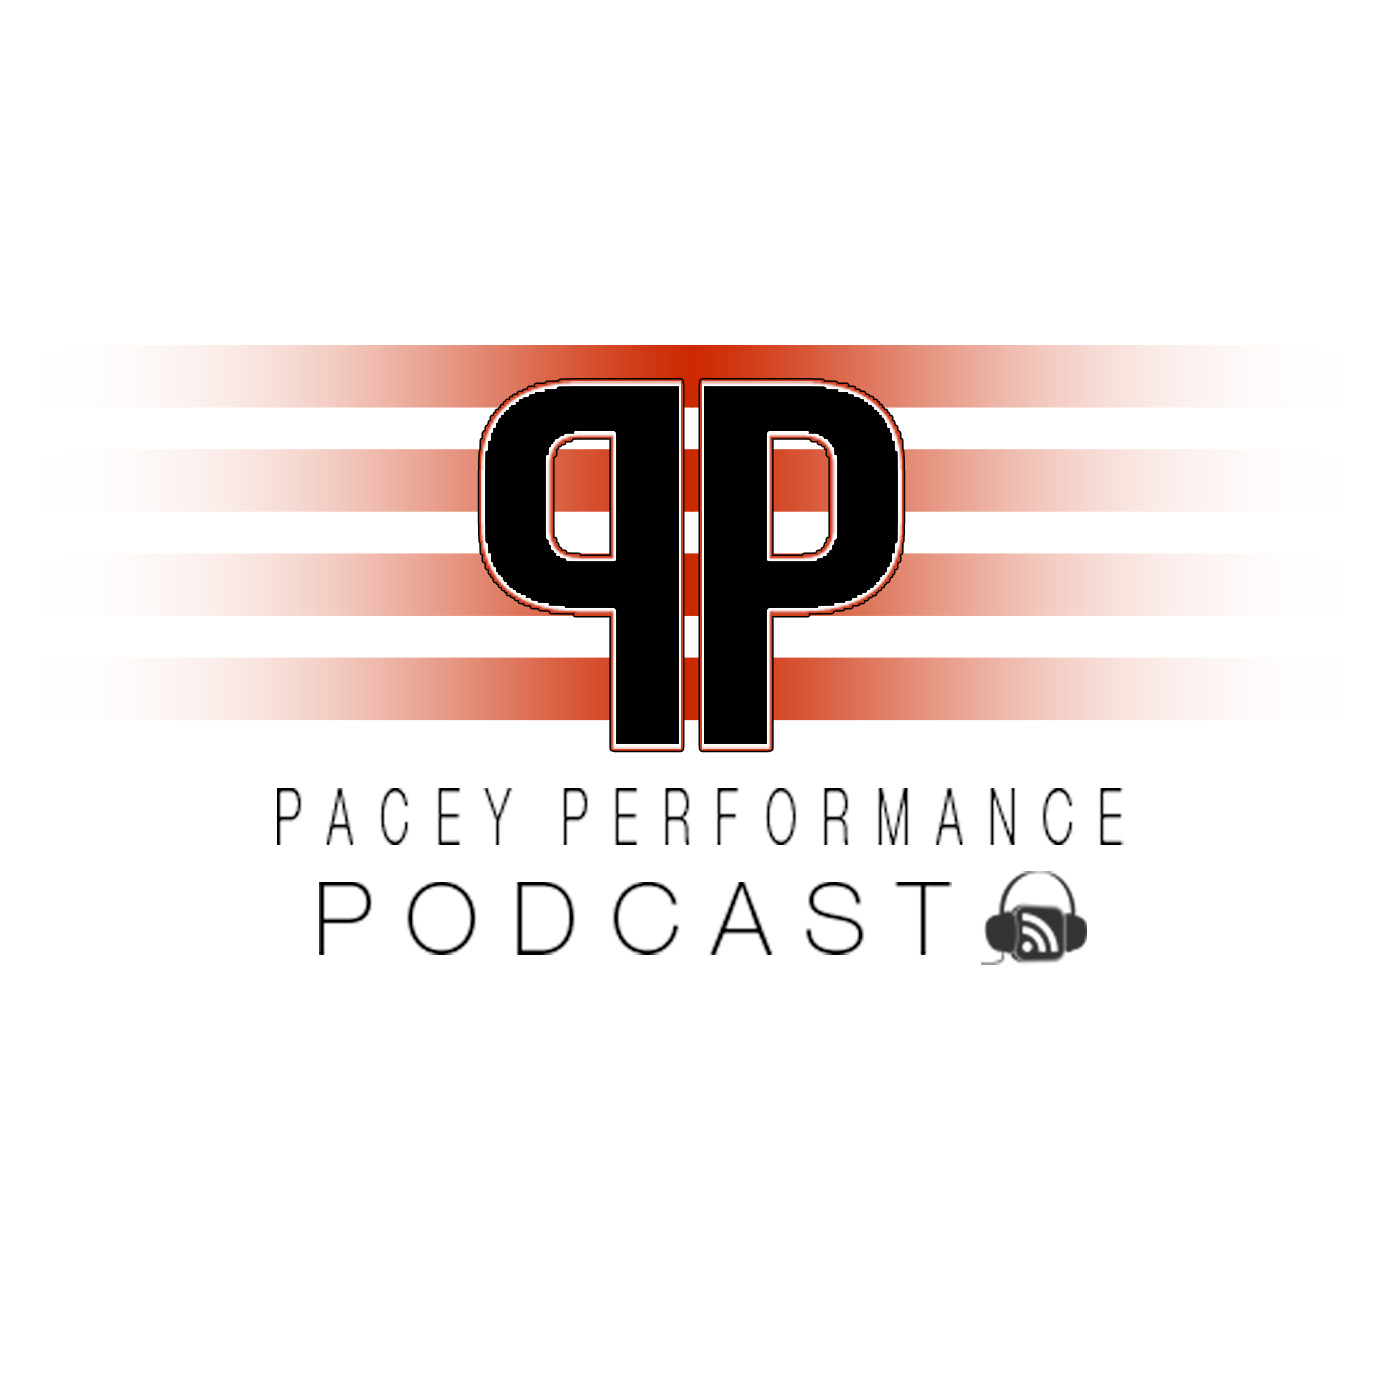 Pacey Performance Podcast #161 - Andrew Murray (Director of Performance & Sports Science at the University of Oregon)